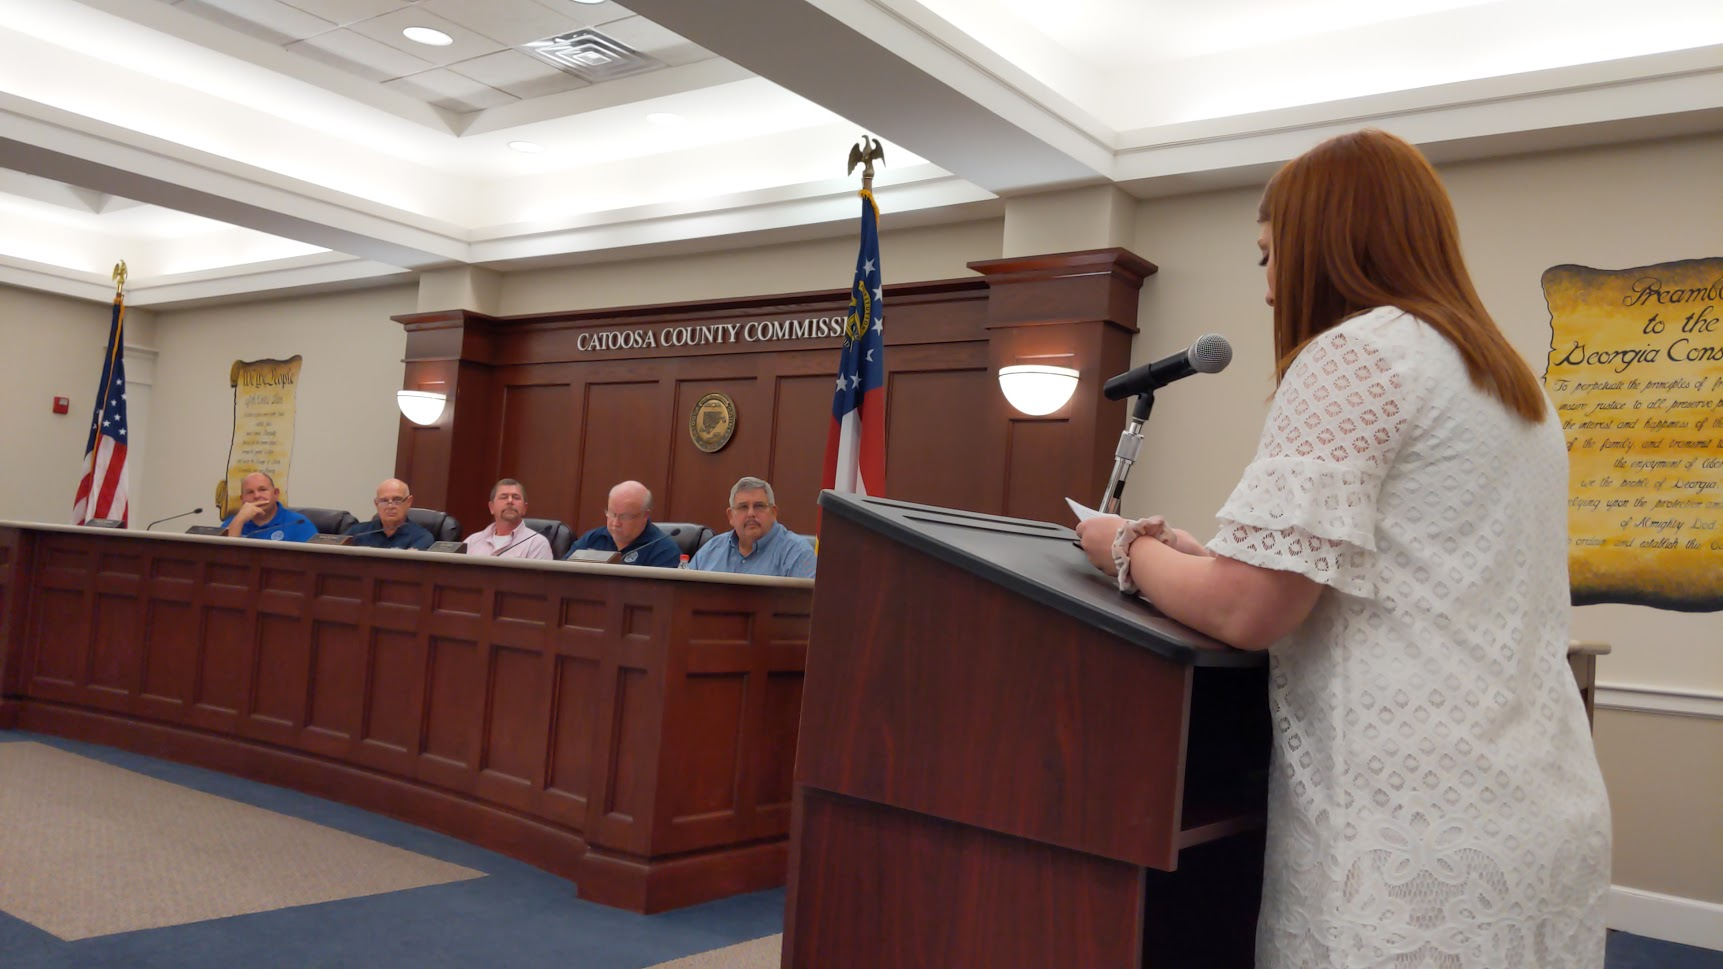 Emily Momberg speaking about the digital divide at a commission meeting in Catoosa County. (file photo)